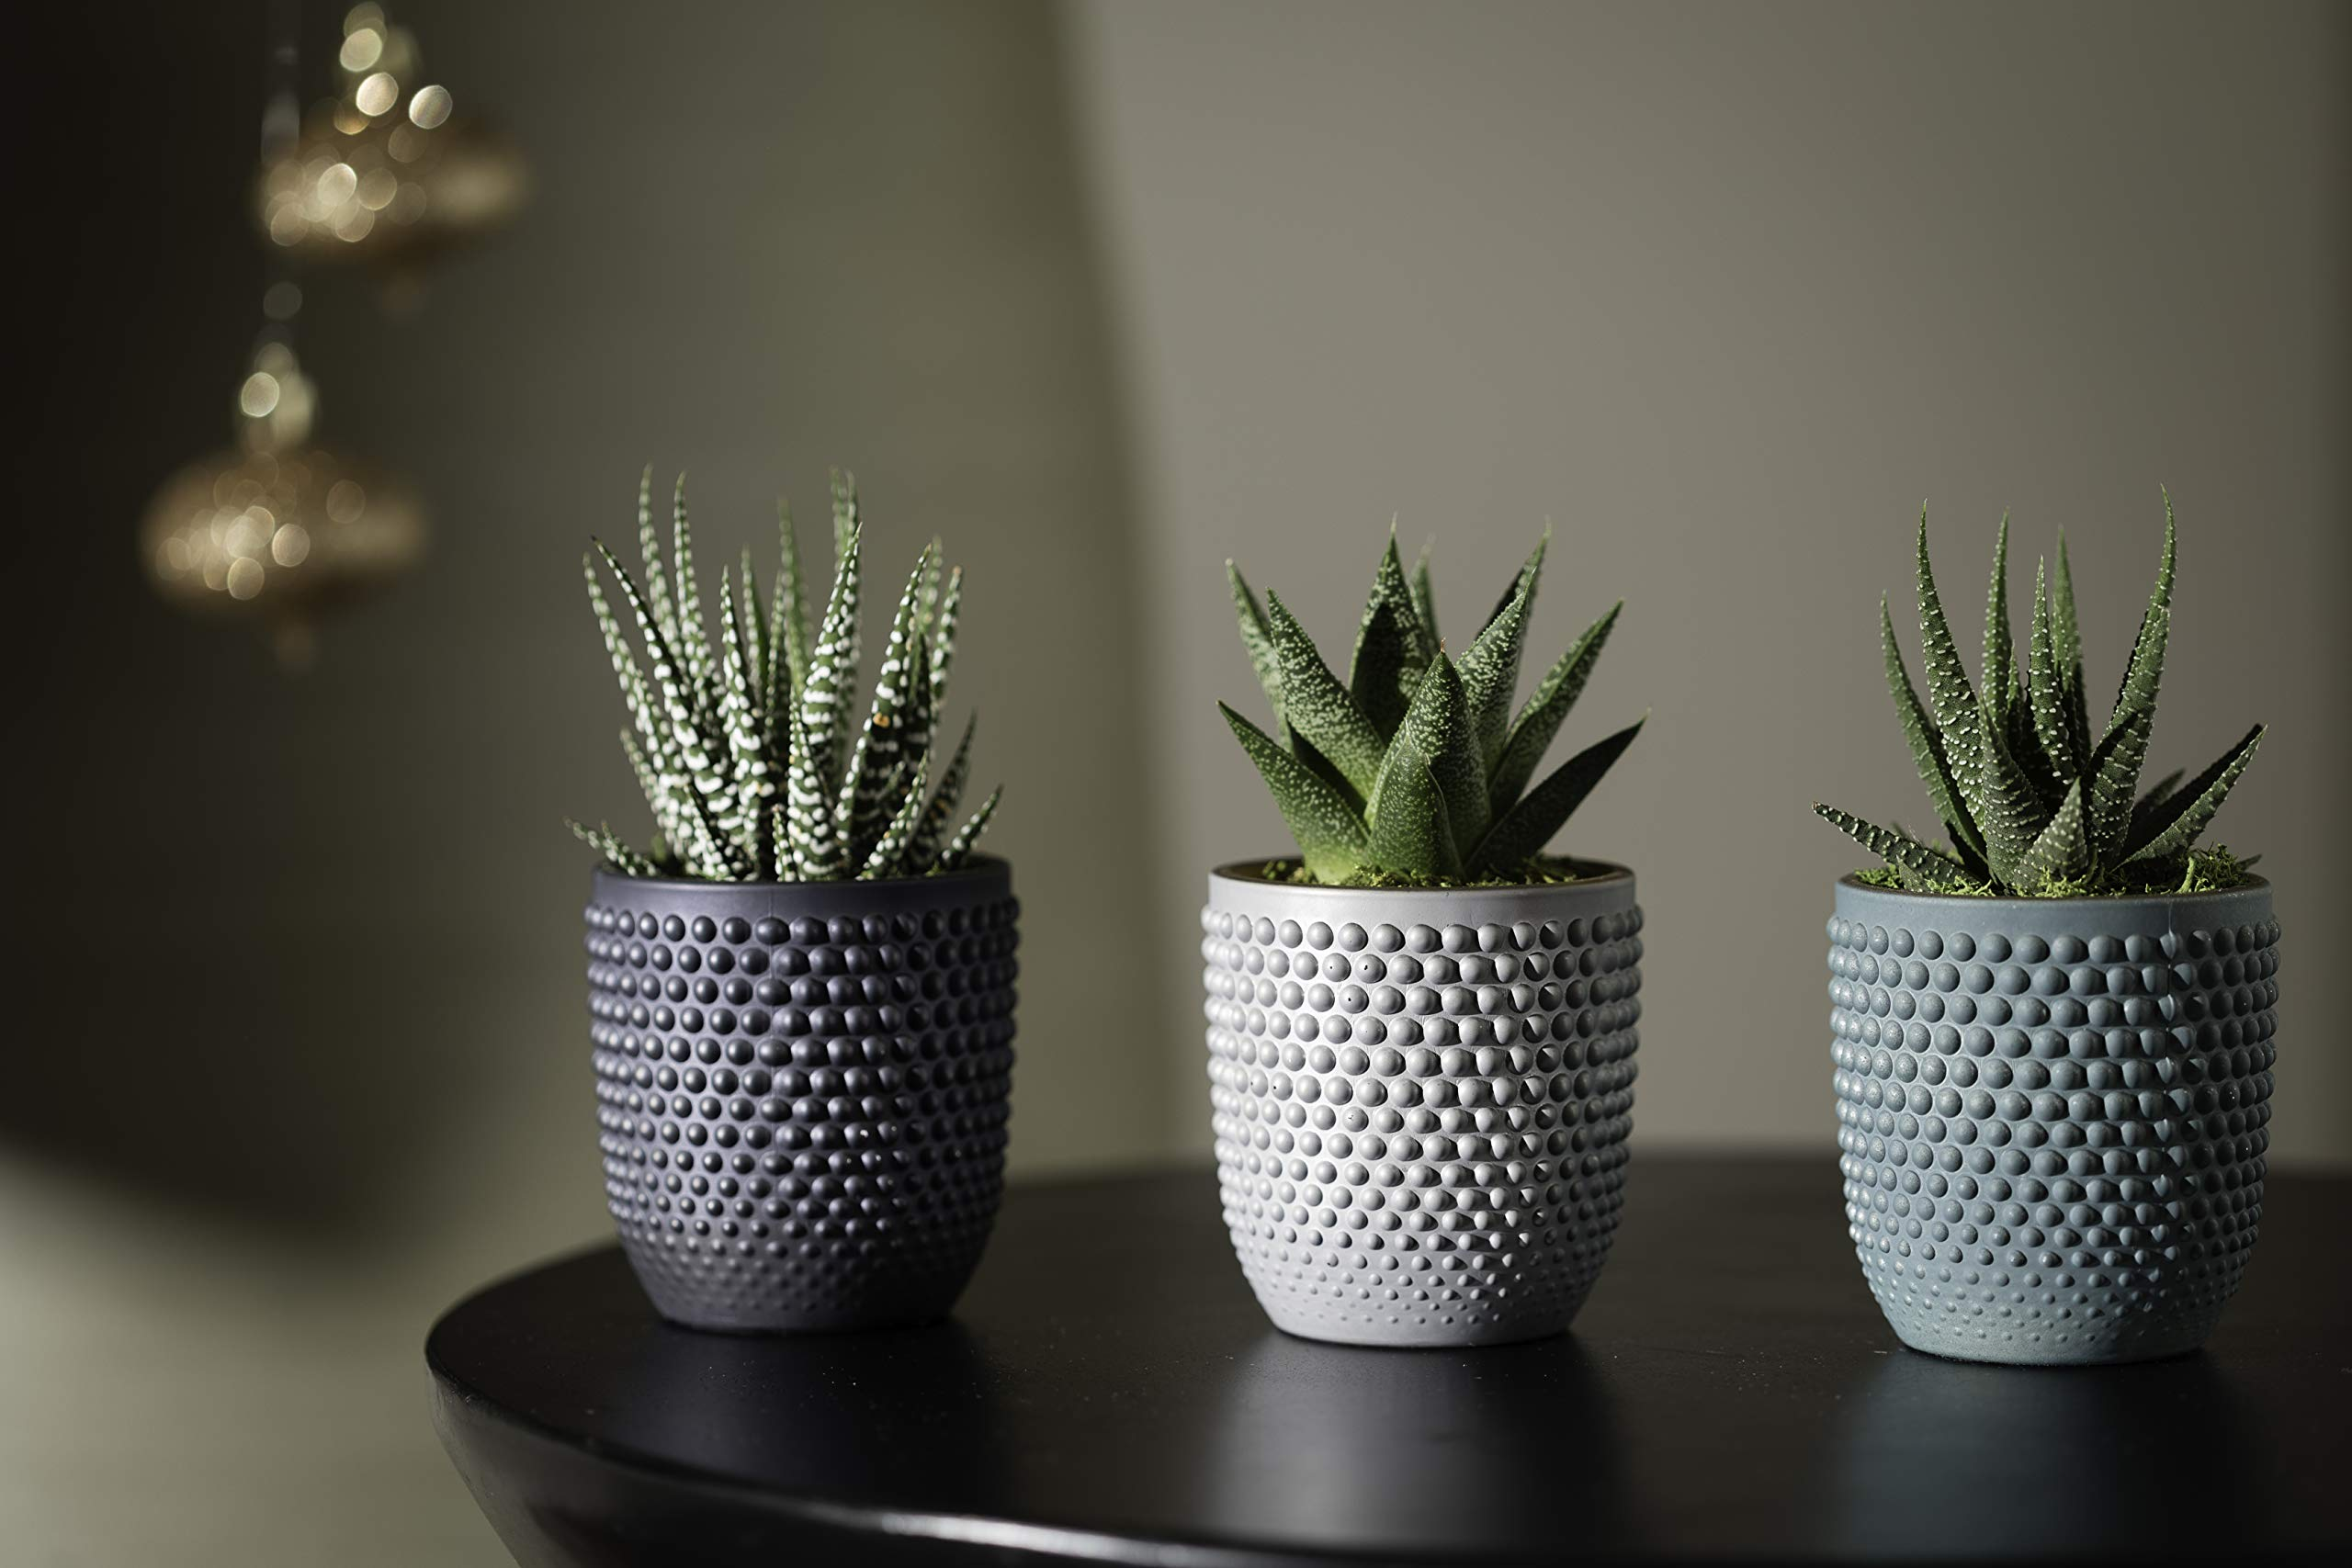 Live Succulents in Blue, Teal, and Grey Ceramic Containers Set of 3, From Hallmark Flowers by Hallmark Flowers (Image #1)